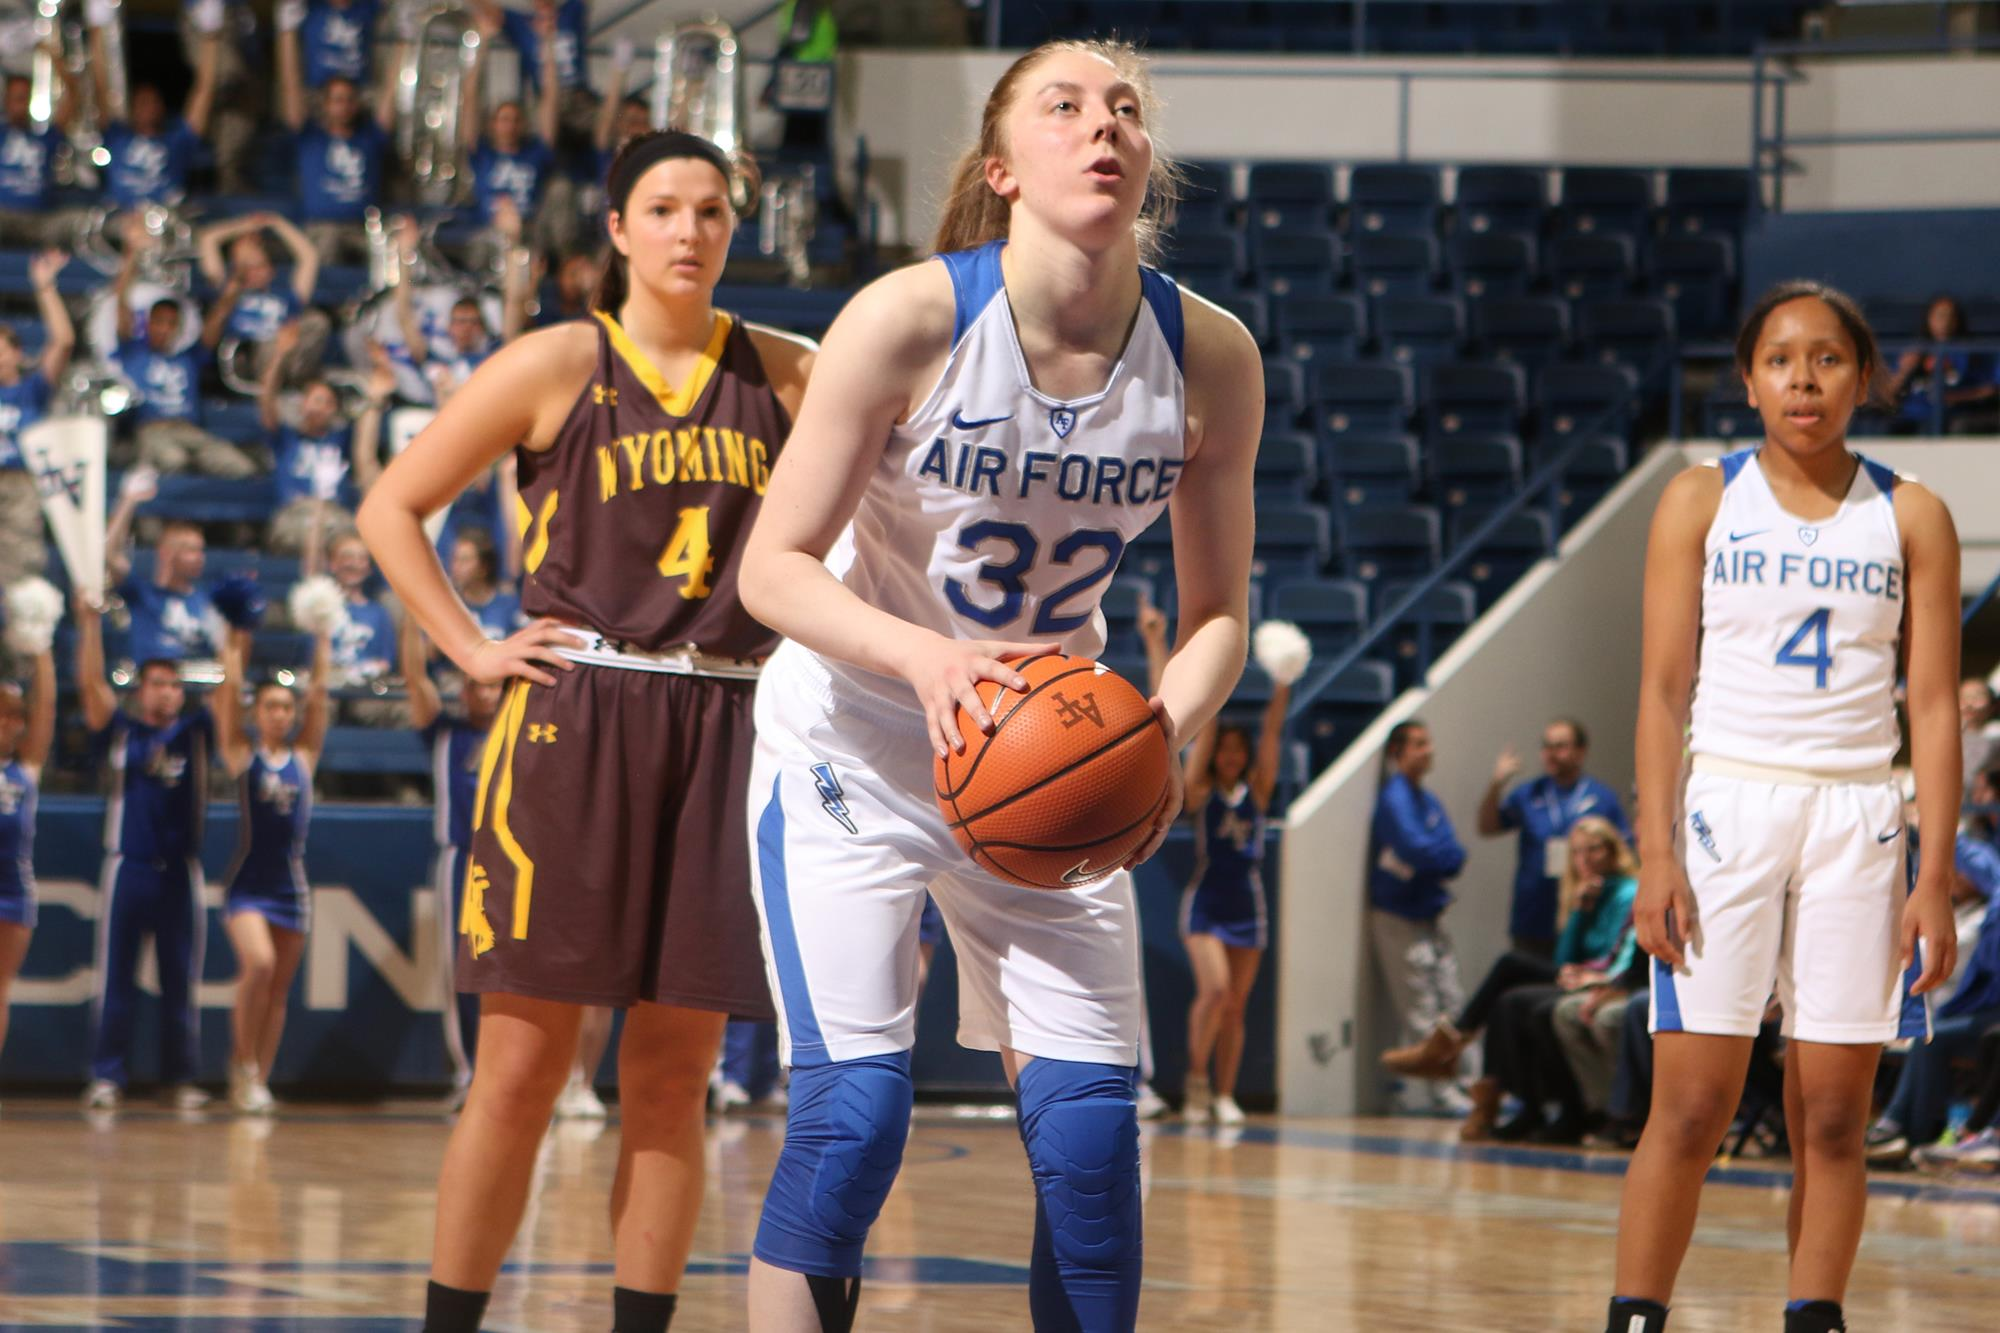 62b1d965d5eee Kaelin Immel - Women's Basketball - Air Force Academy Athletics